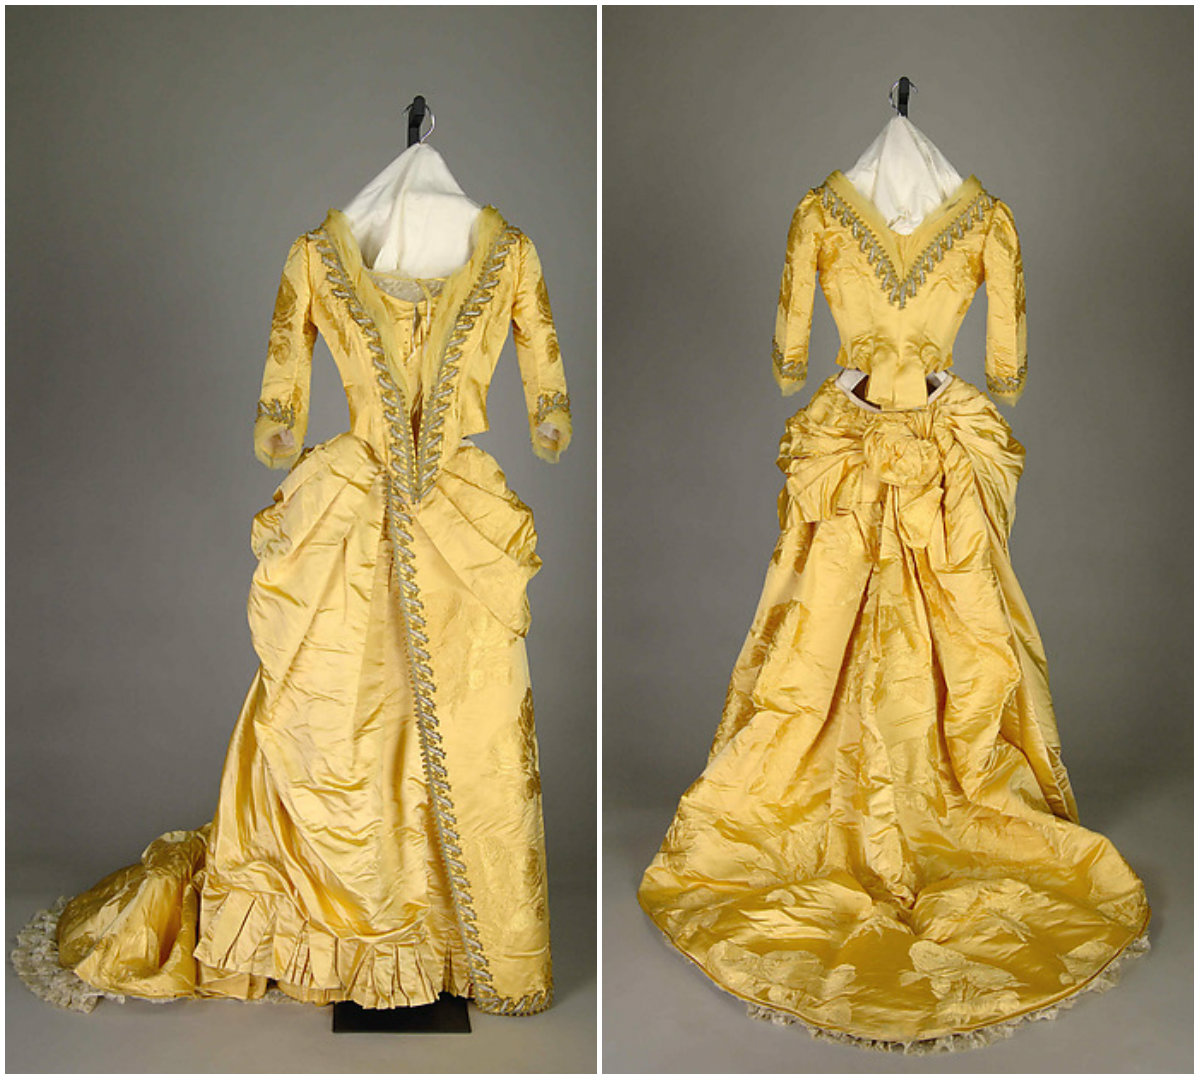 1888. Evening Gown. Silk, beads, metallic. metmuseum